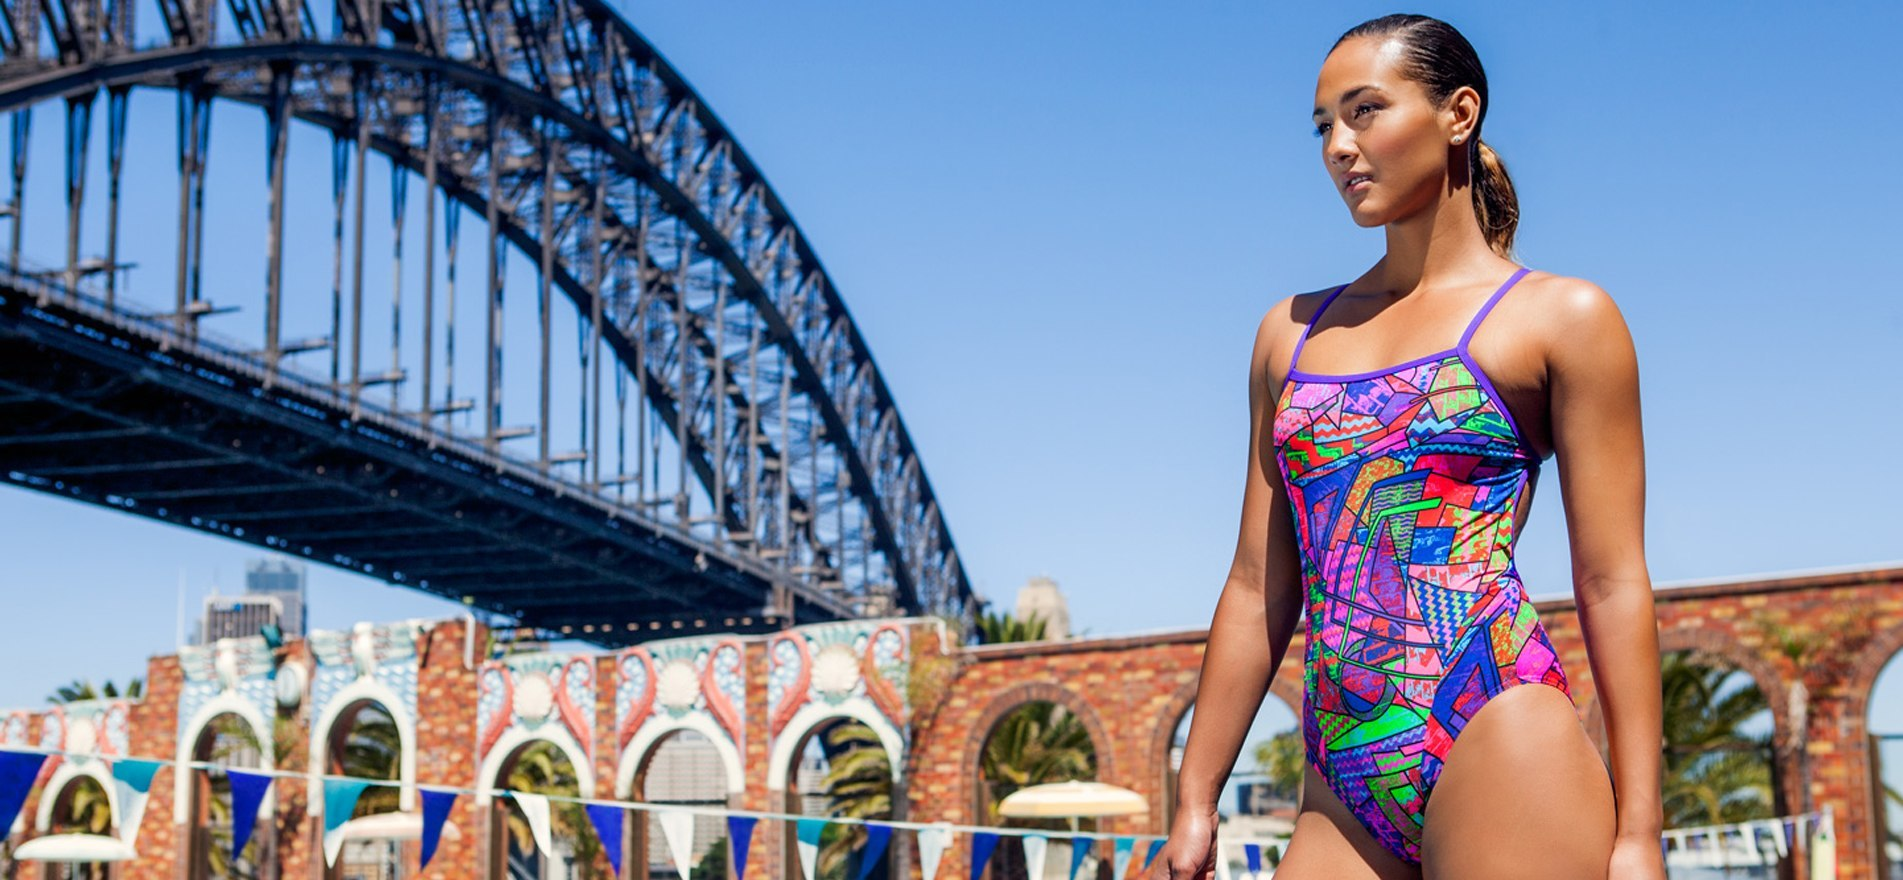 a8a83c93b3a Contest: Tell us the Funkita print you love and you could win a Free  Giveaway through SwimOutlet.com